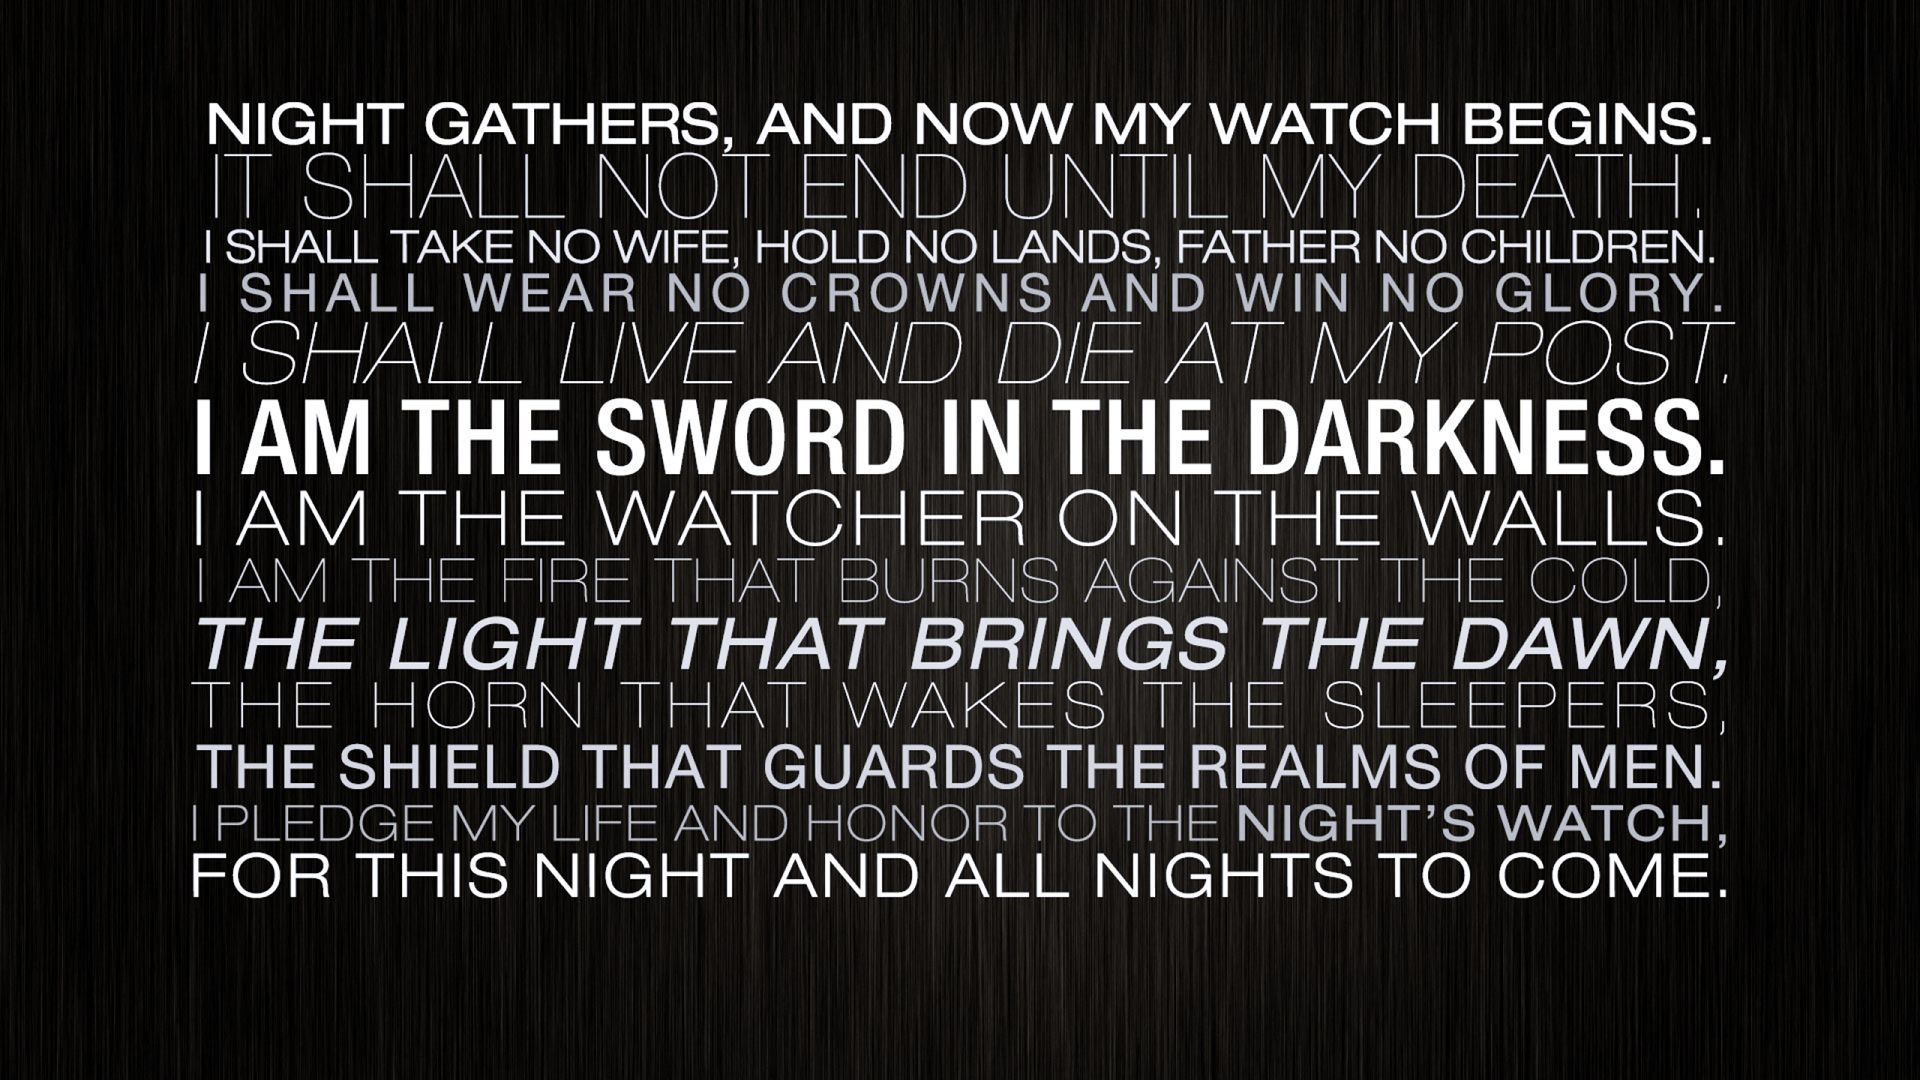 Free Download Game Of Thrones Quotes Wallpapers Hd Backgrounds Images Pics 1920x1080 For Your Desktop Mobile Tablet Explore 22 Game Of Thrones Quotes Wallpapers Game Of Thrones Quotes Wallpapers